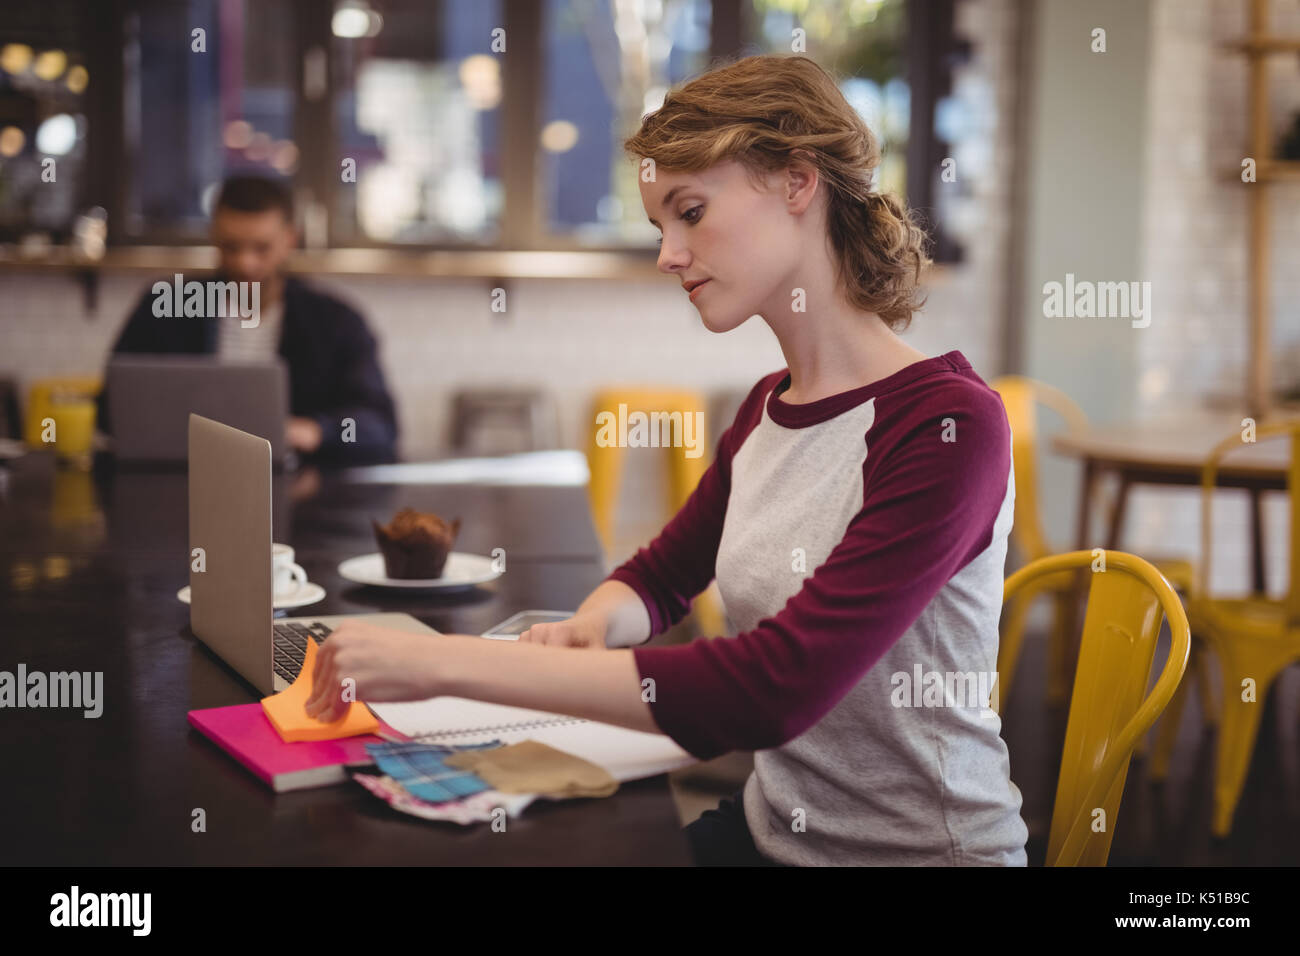 Confident young female designer sitting with notebooks and papers at table in coffee shop - Stock Image